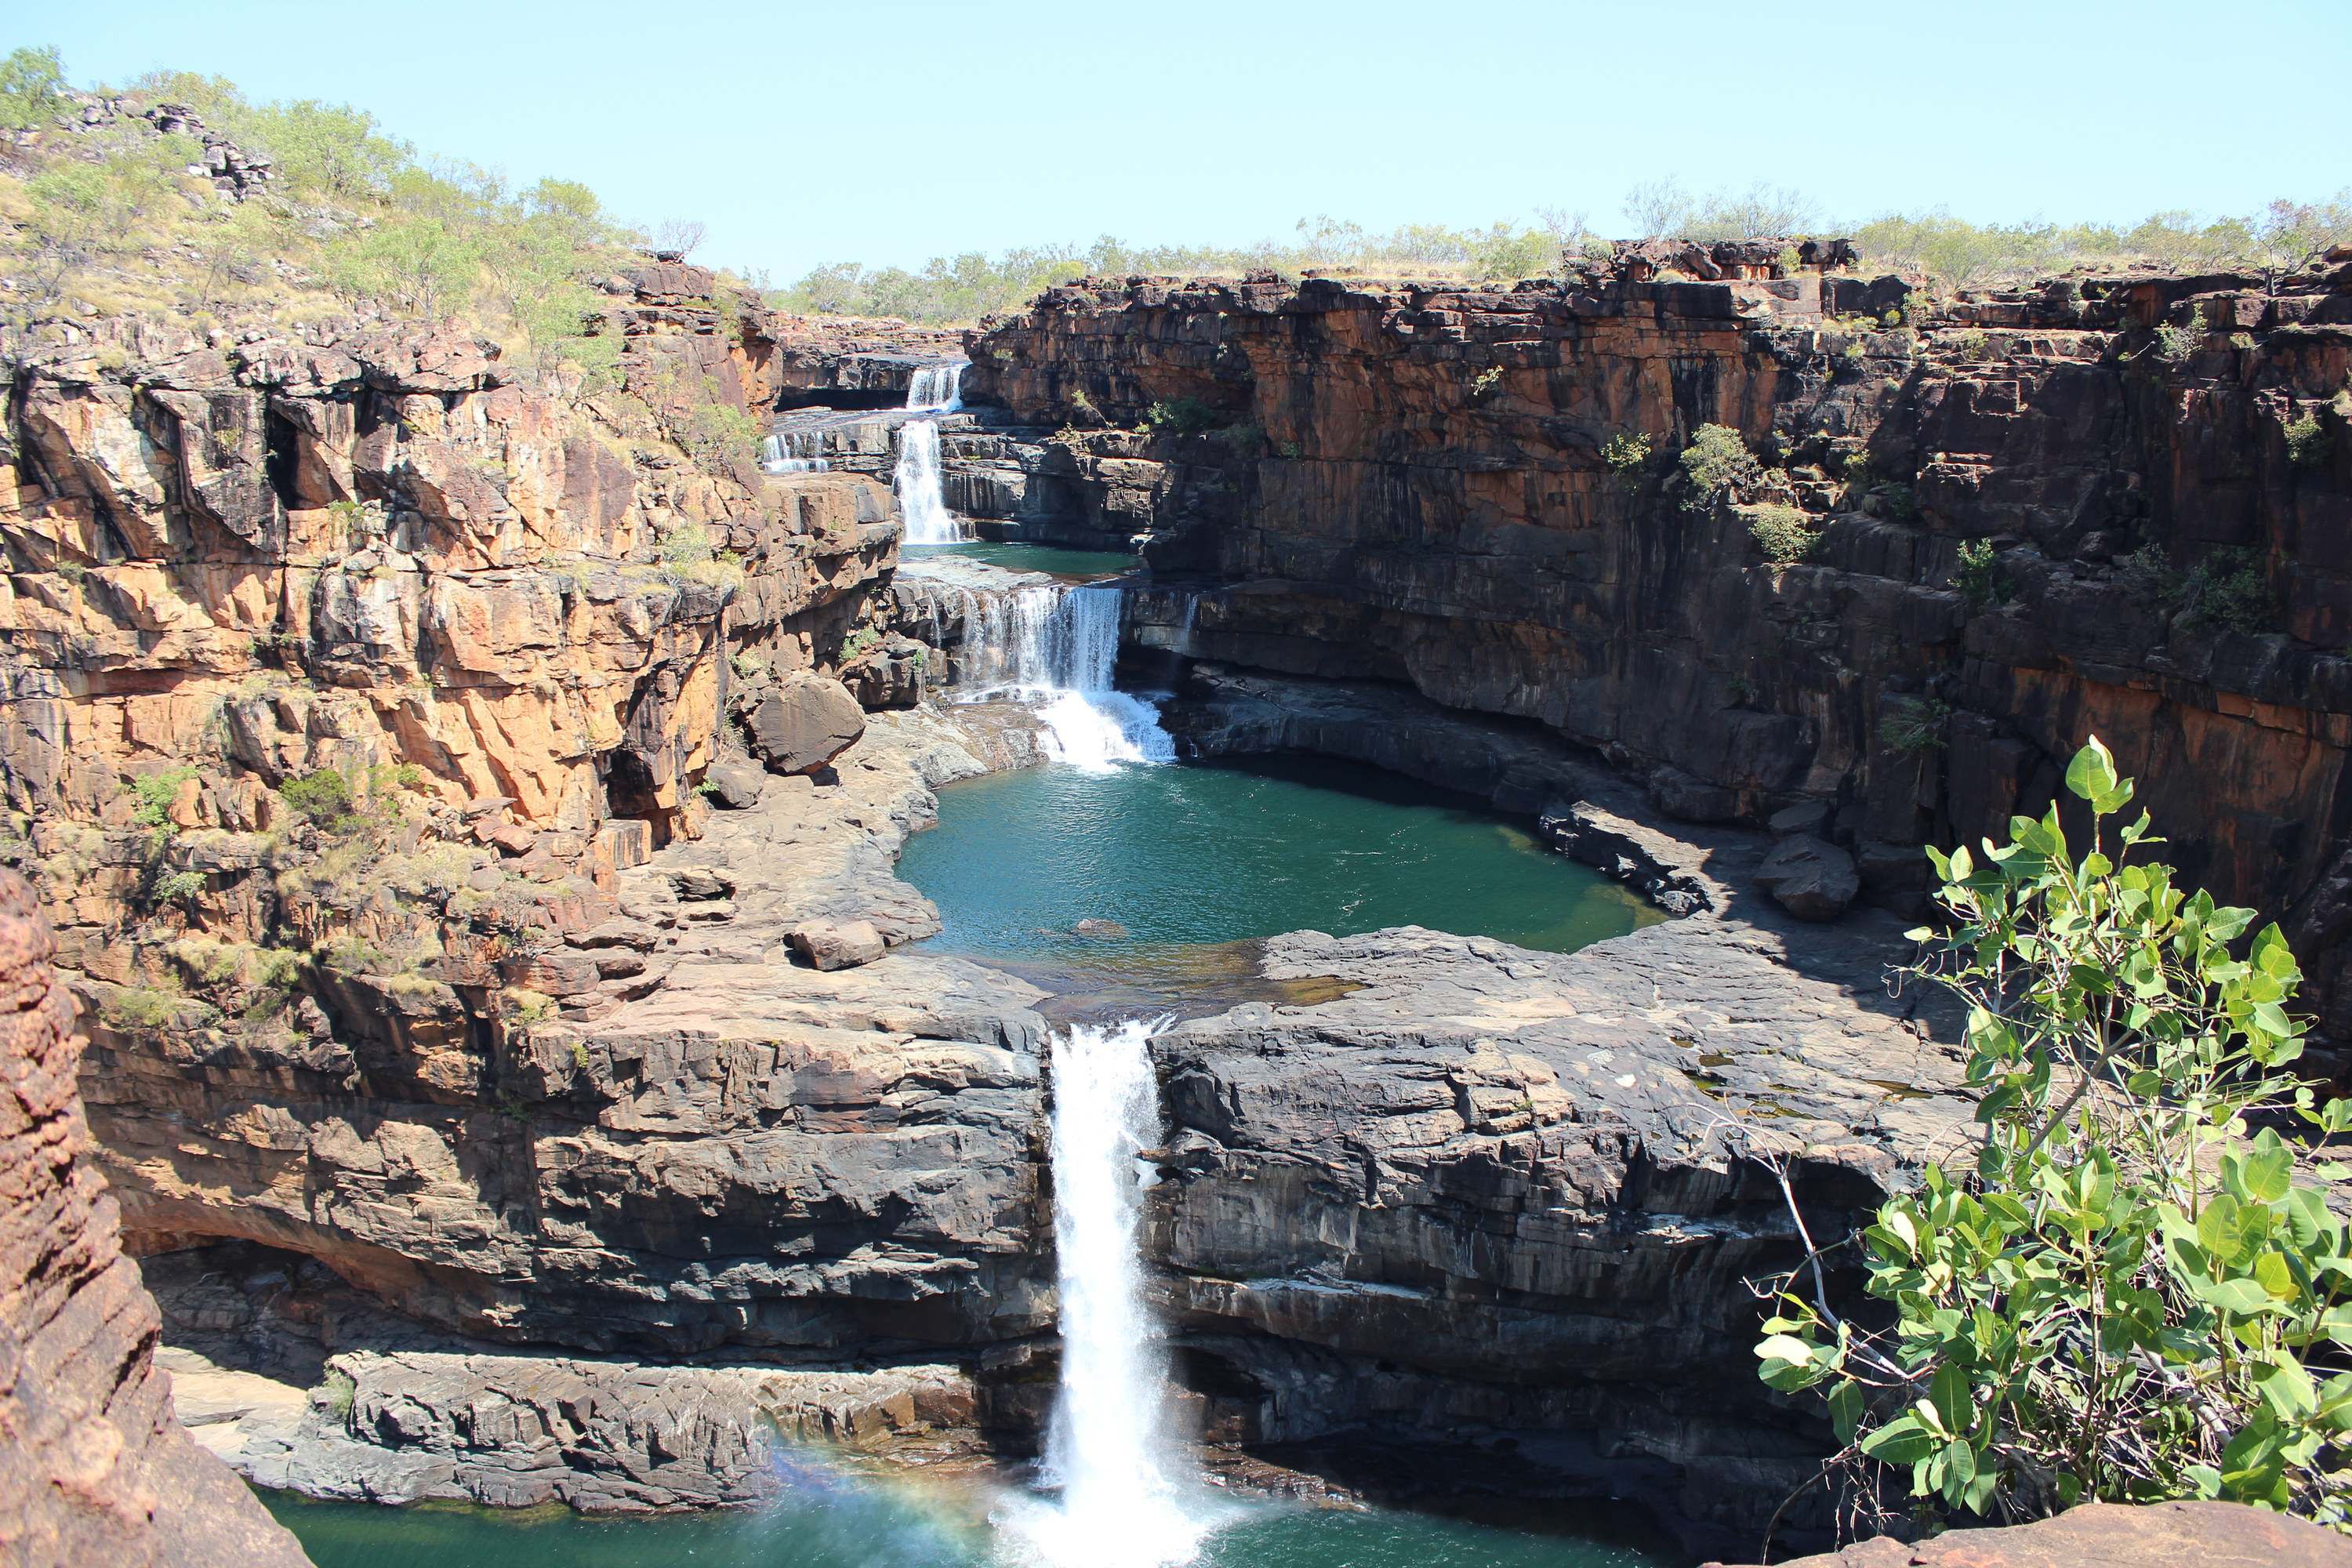 Mitchell falls in the kimberly